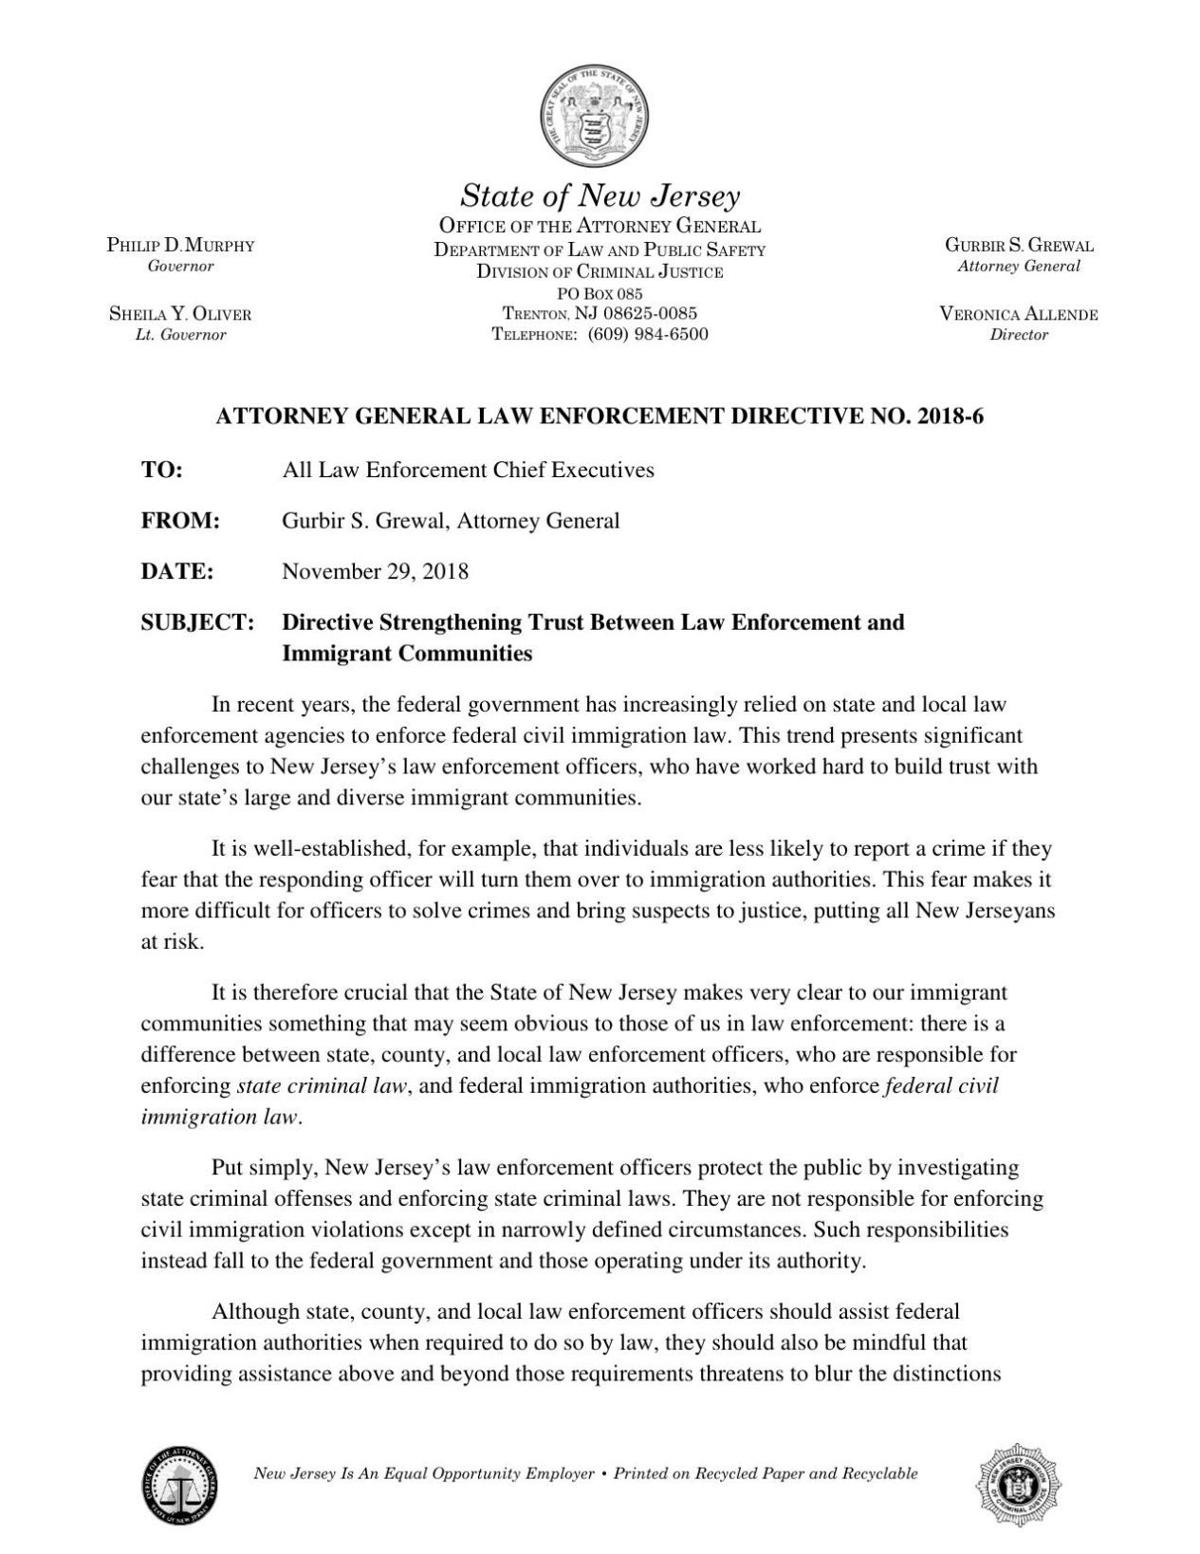 Attorney General guidelines on ICE